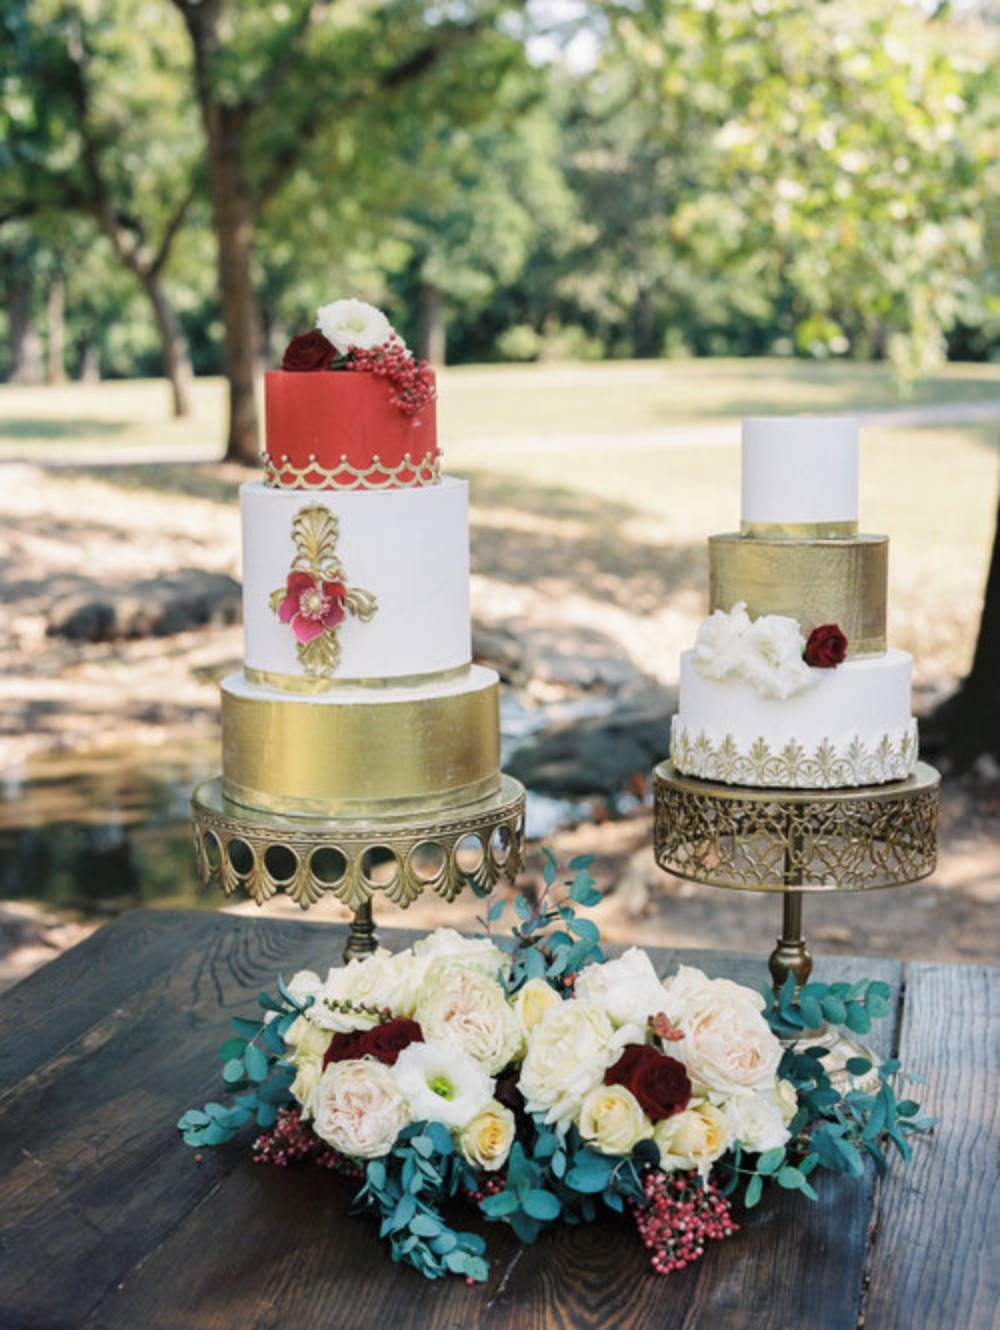 5 Ways to Style your Cake Stand from Opulent Treasures